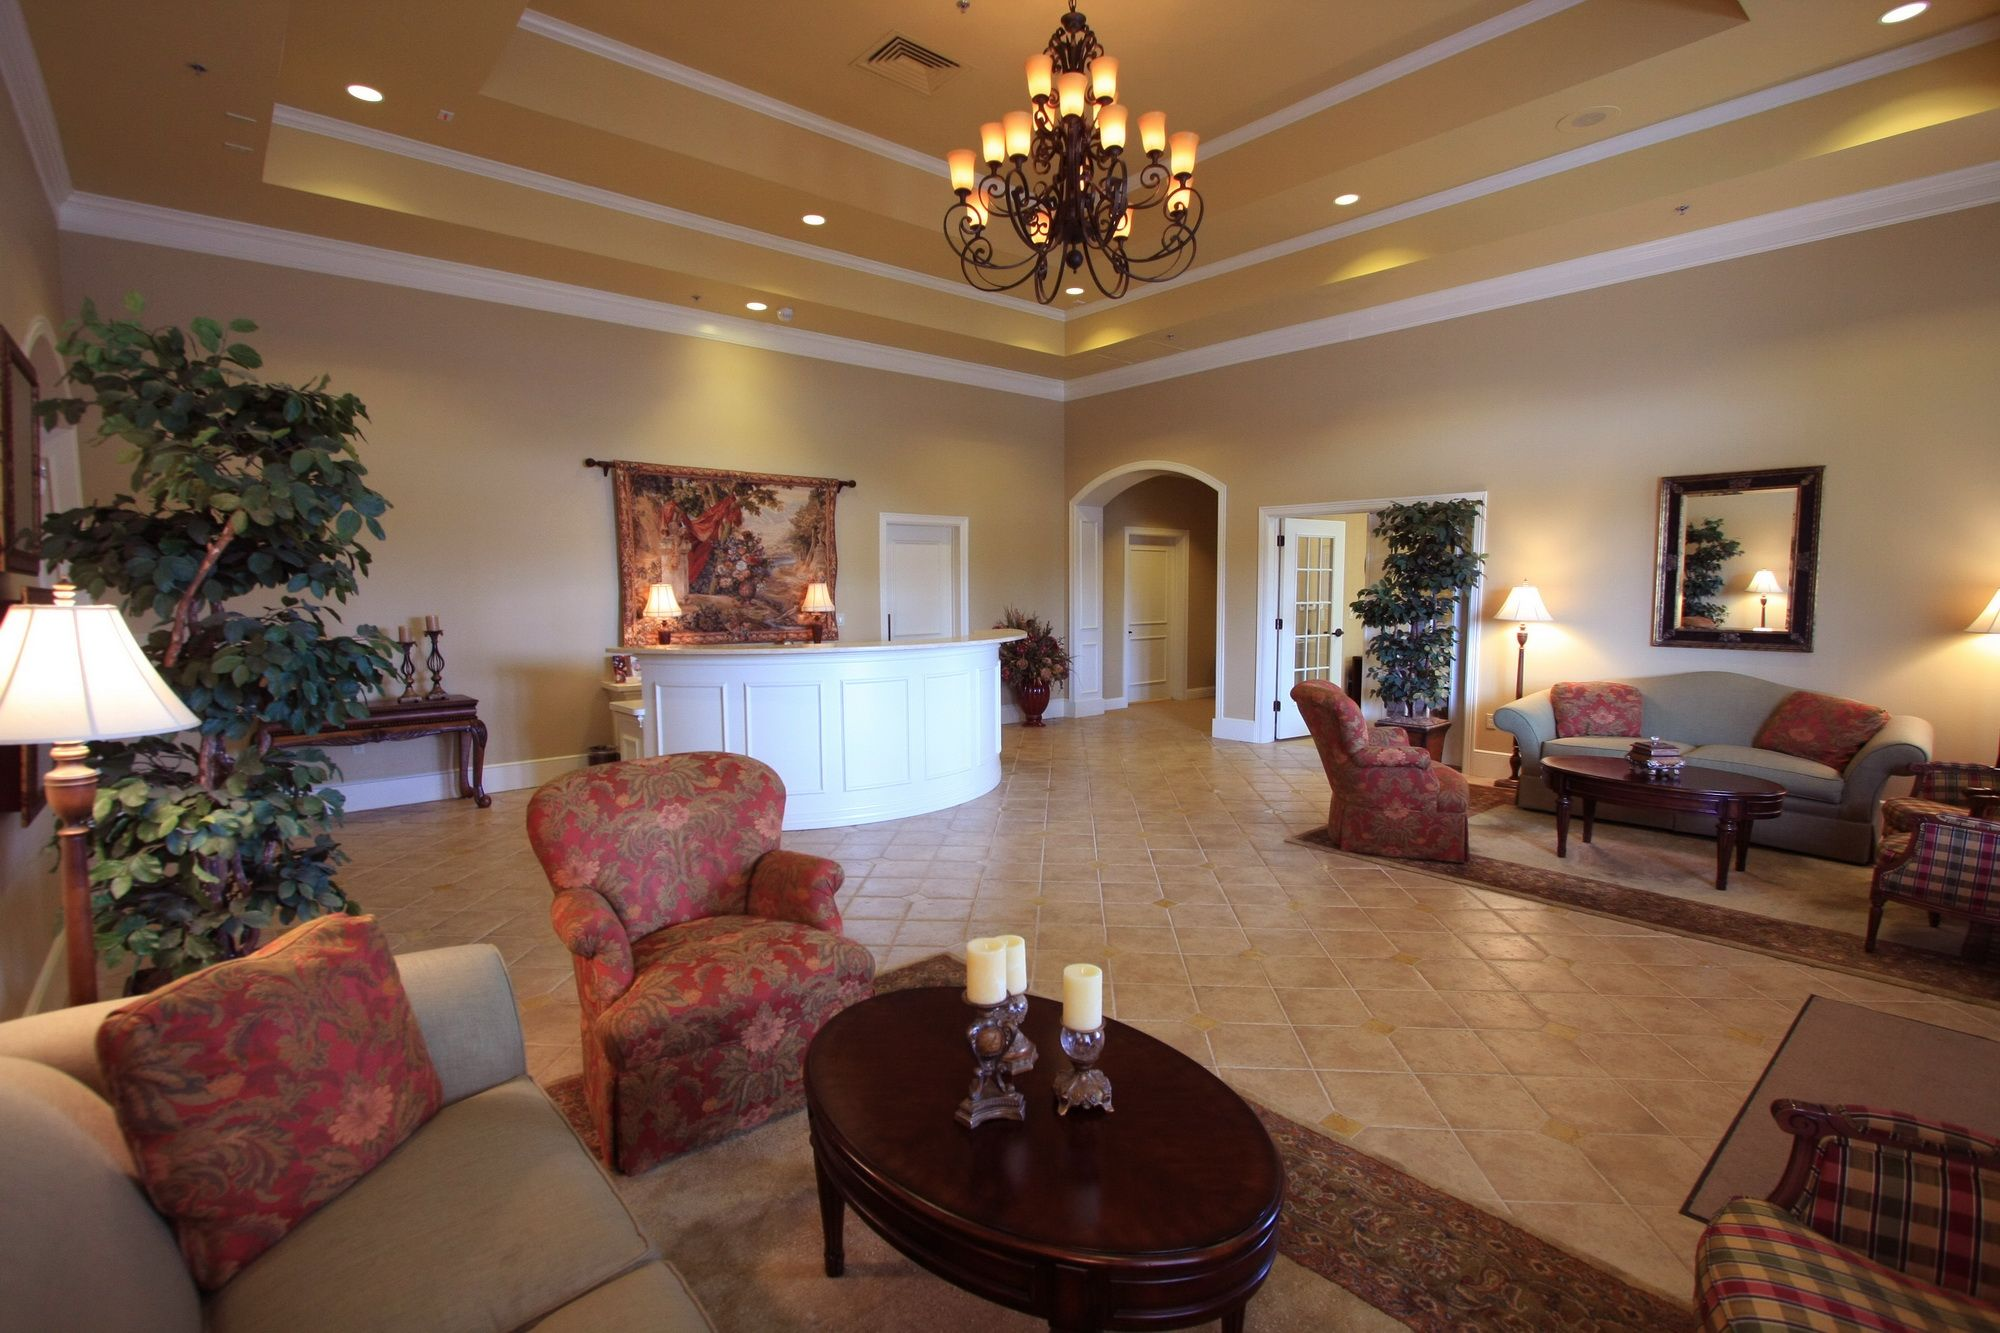 home interior design services. funeral home interior colors  d cor which fit with the